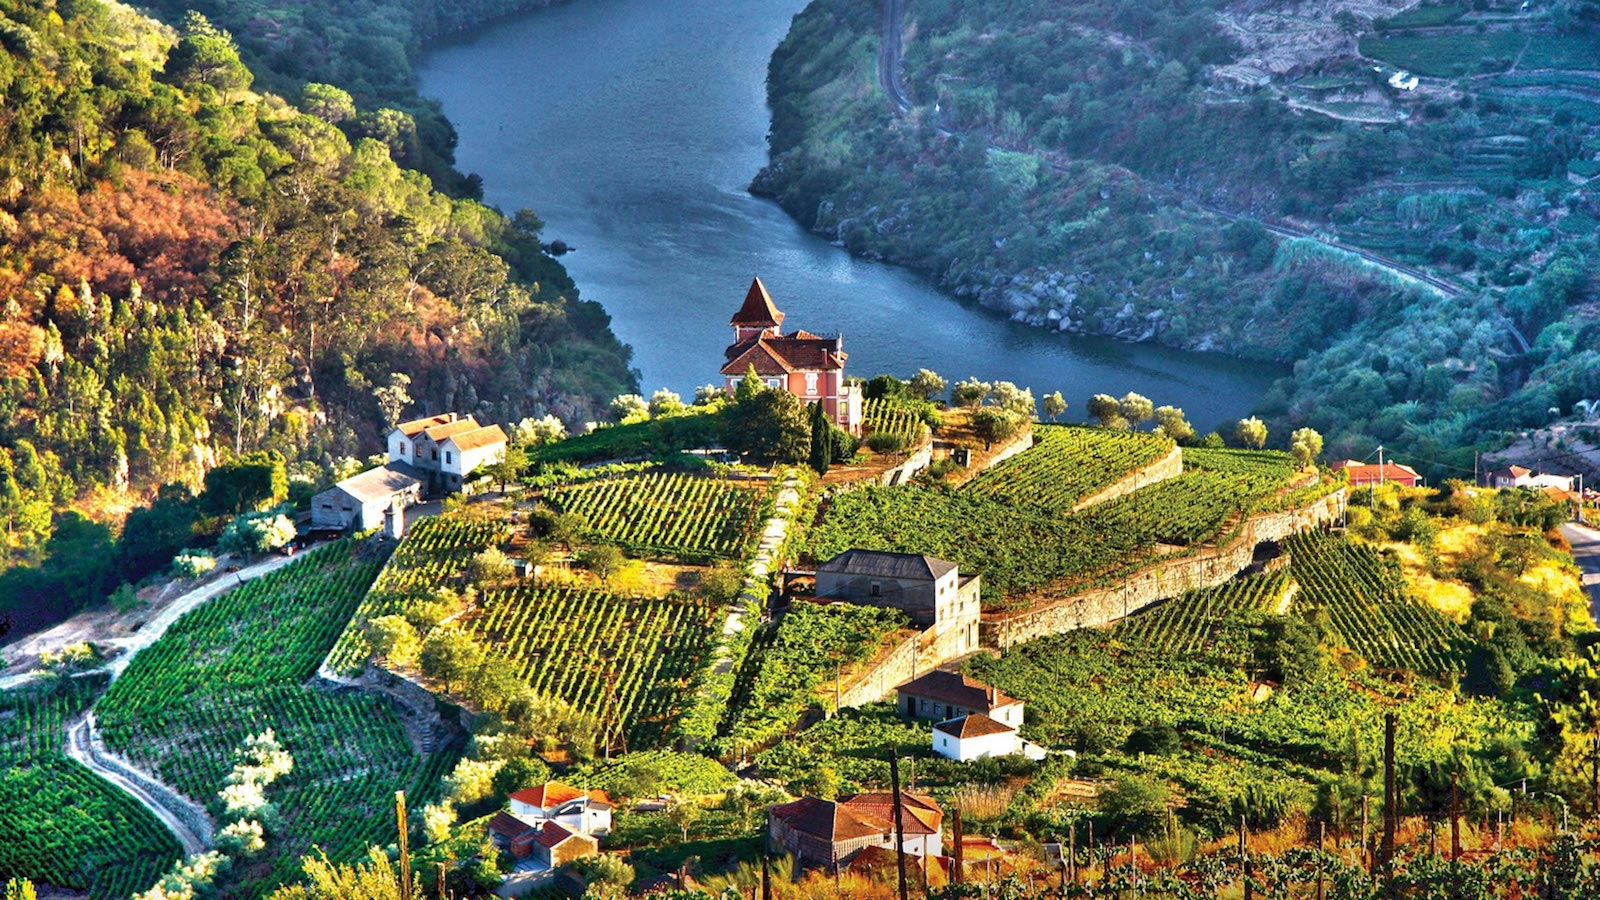 Aerial view of Douro region in Portugal